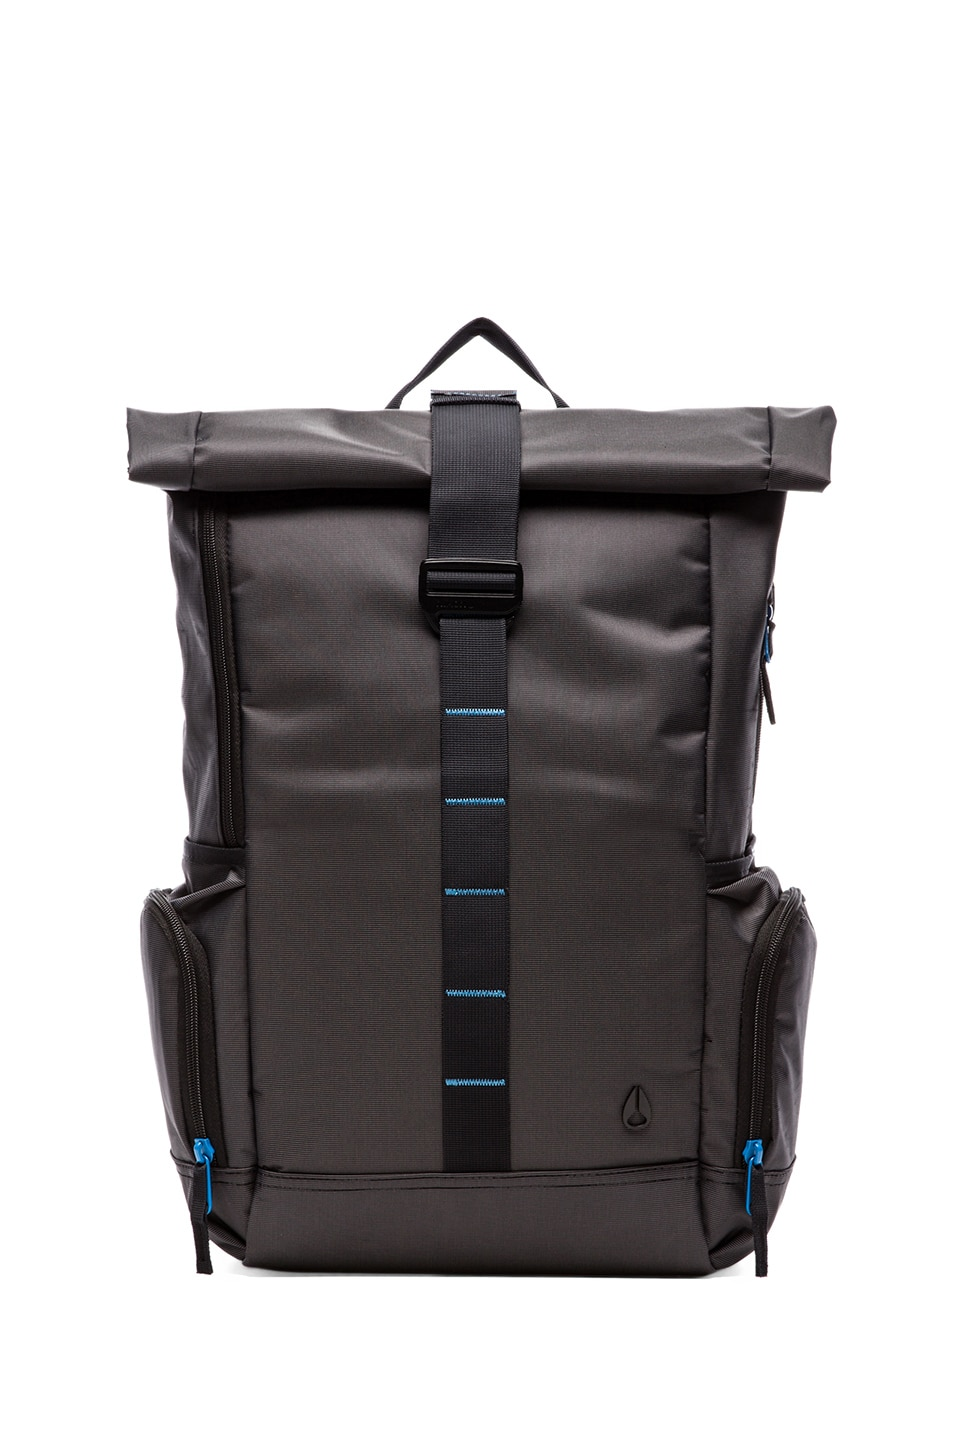 Nixon Hydro Backpack in Black/ Blue